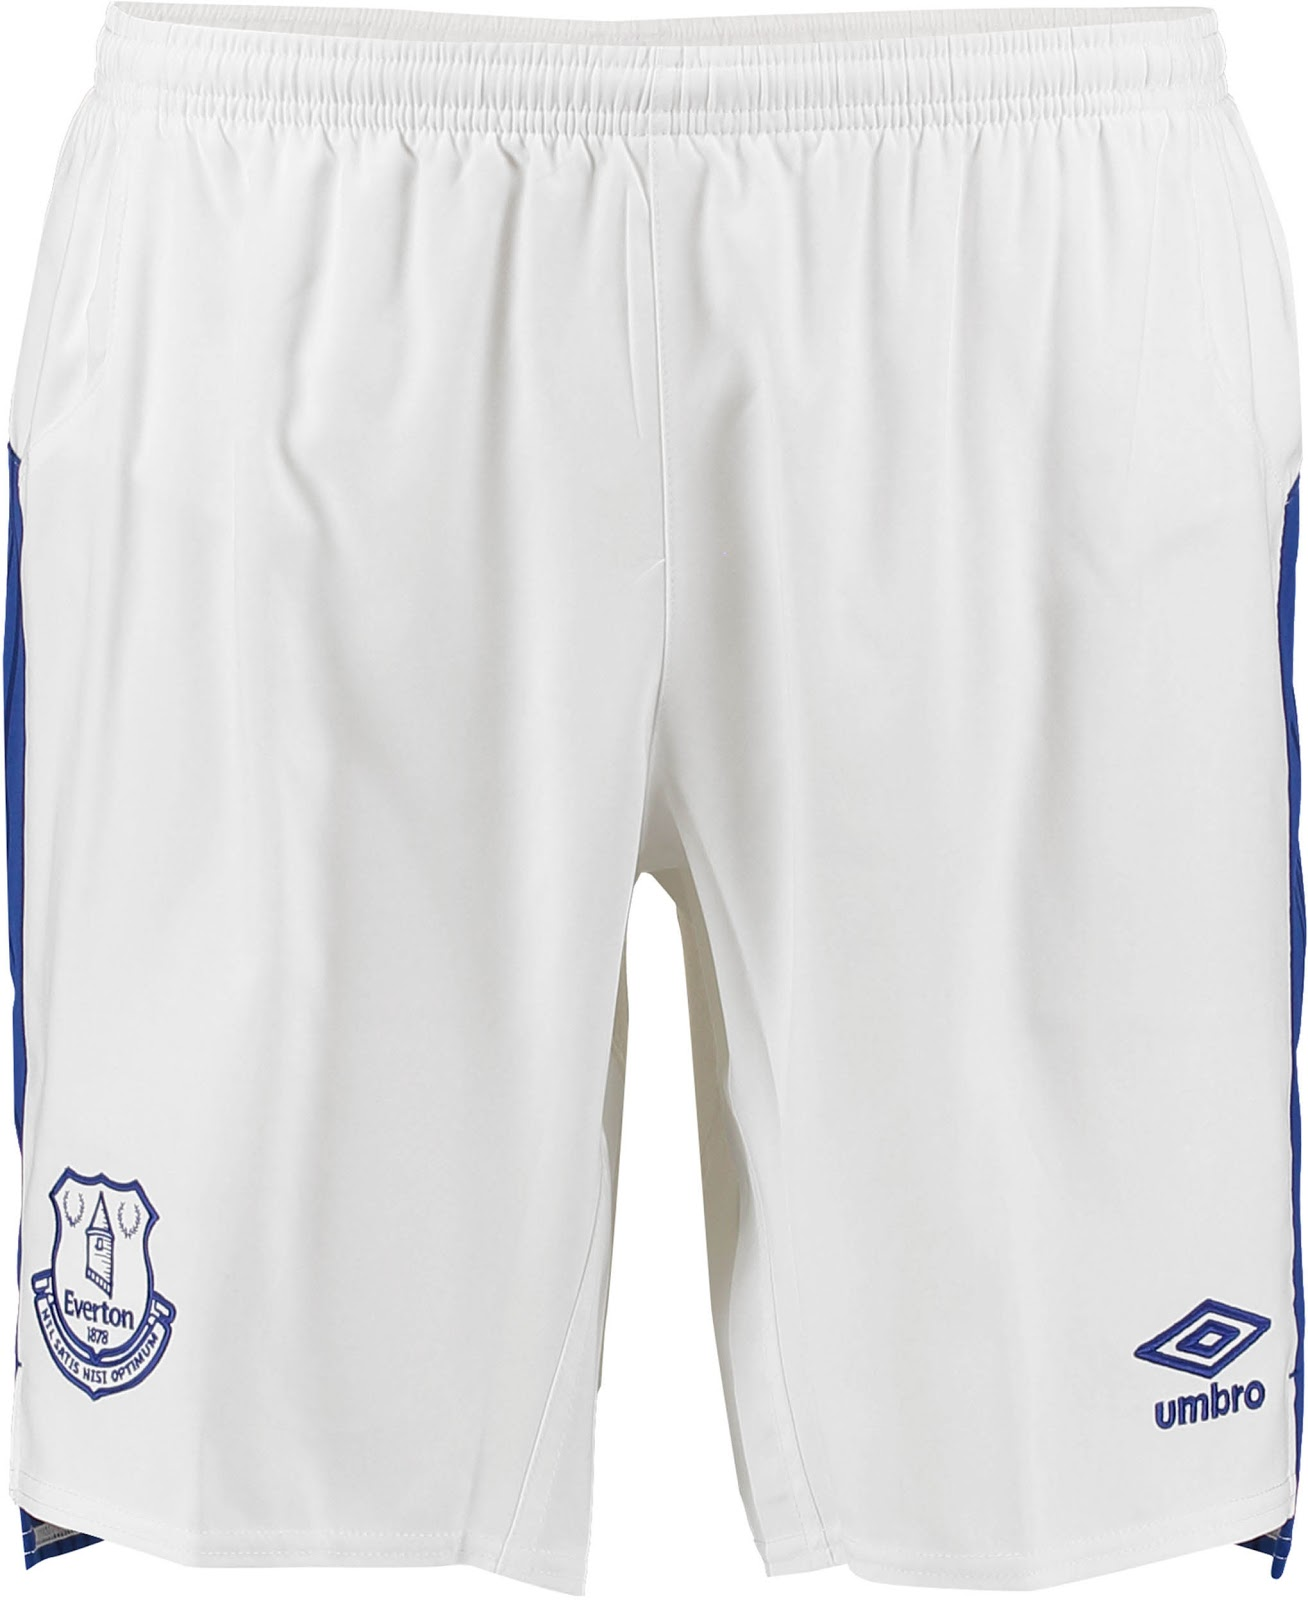 everton-17-18-home-kit-shorts